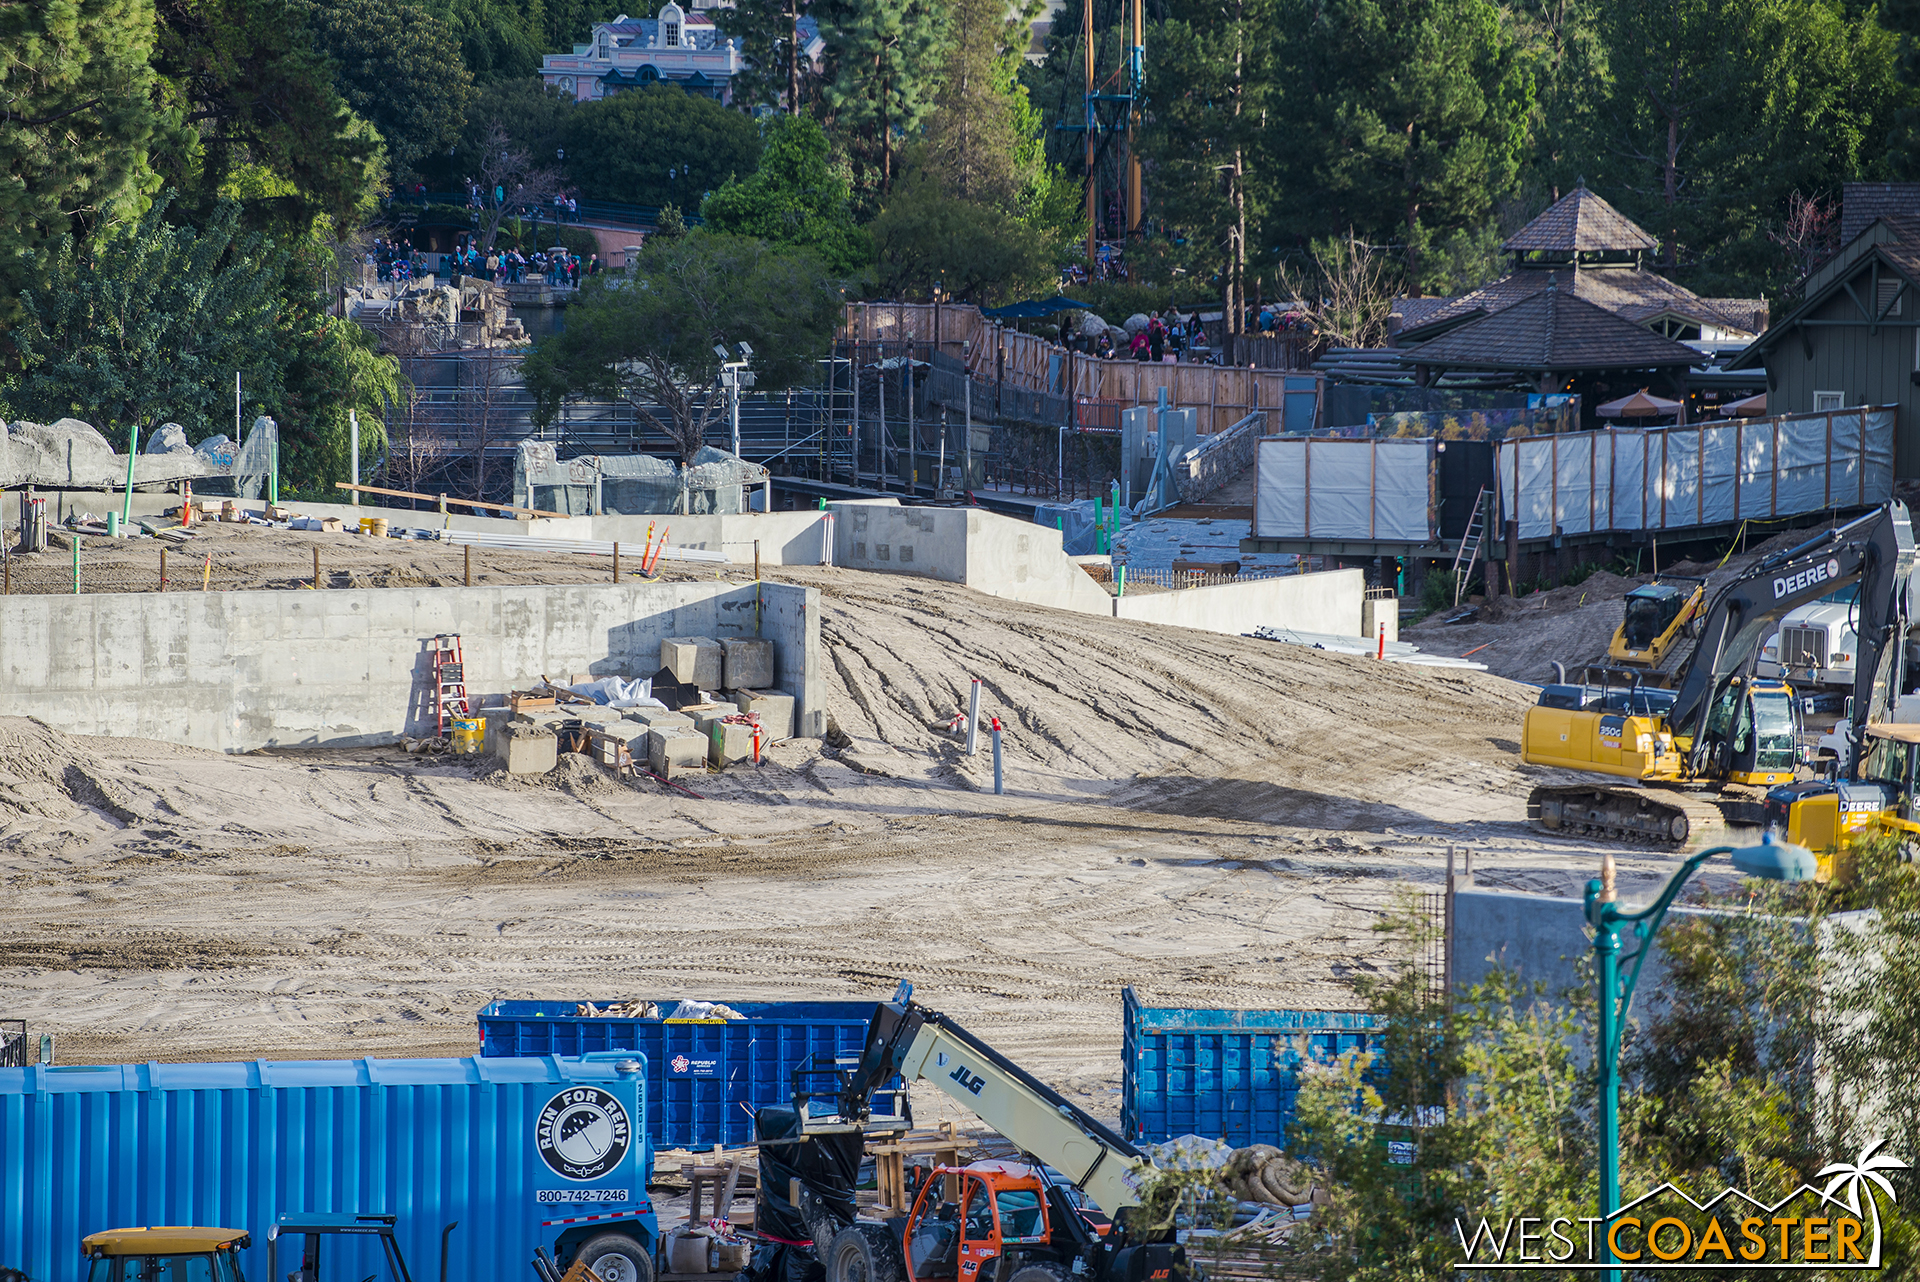 Speaking of walls, remember that wall that was going to Keep Rivers of America Great again? Lets check that out.